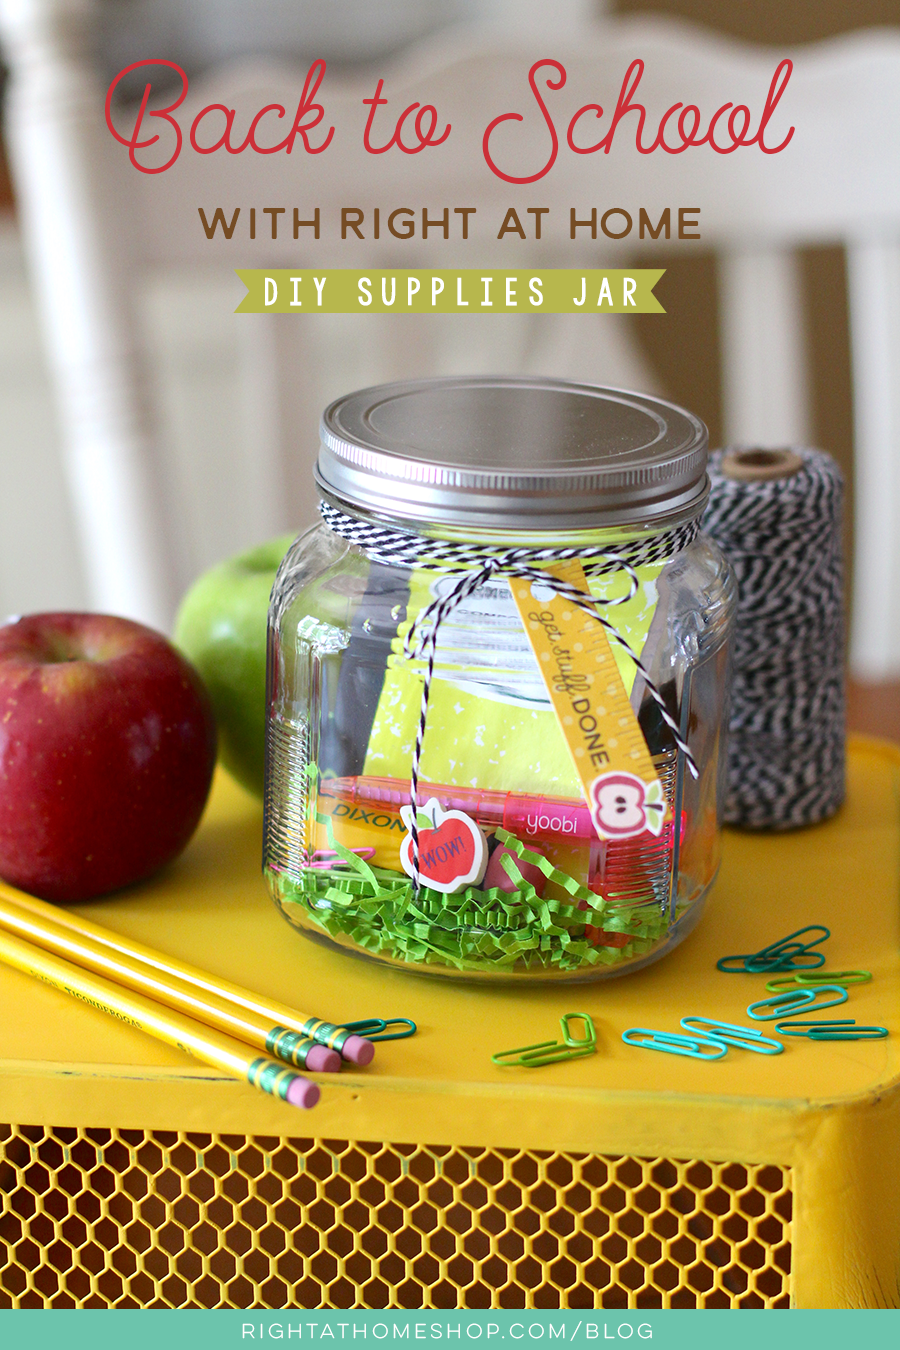 DIY School Supplies Gift Jar // Back to School with Right at Home - rightathomeshop.com/blog